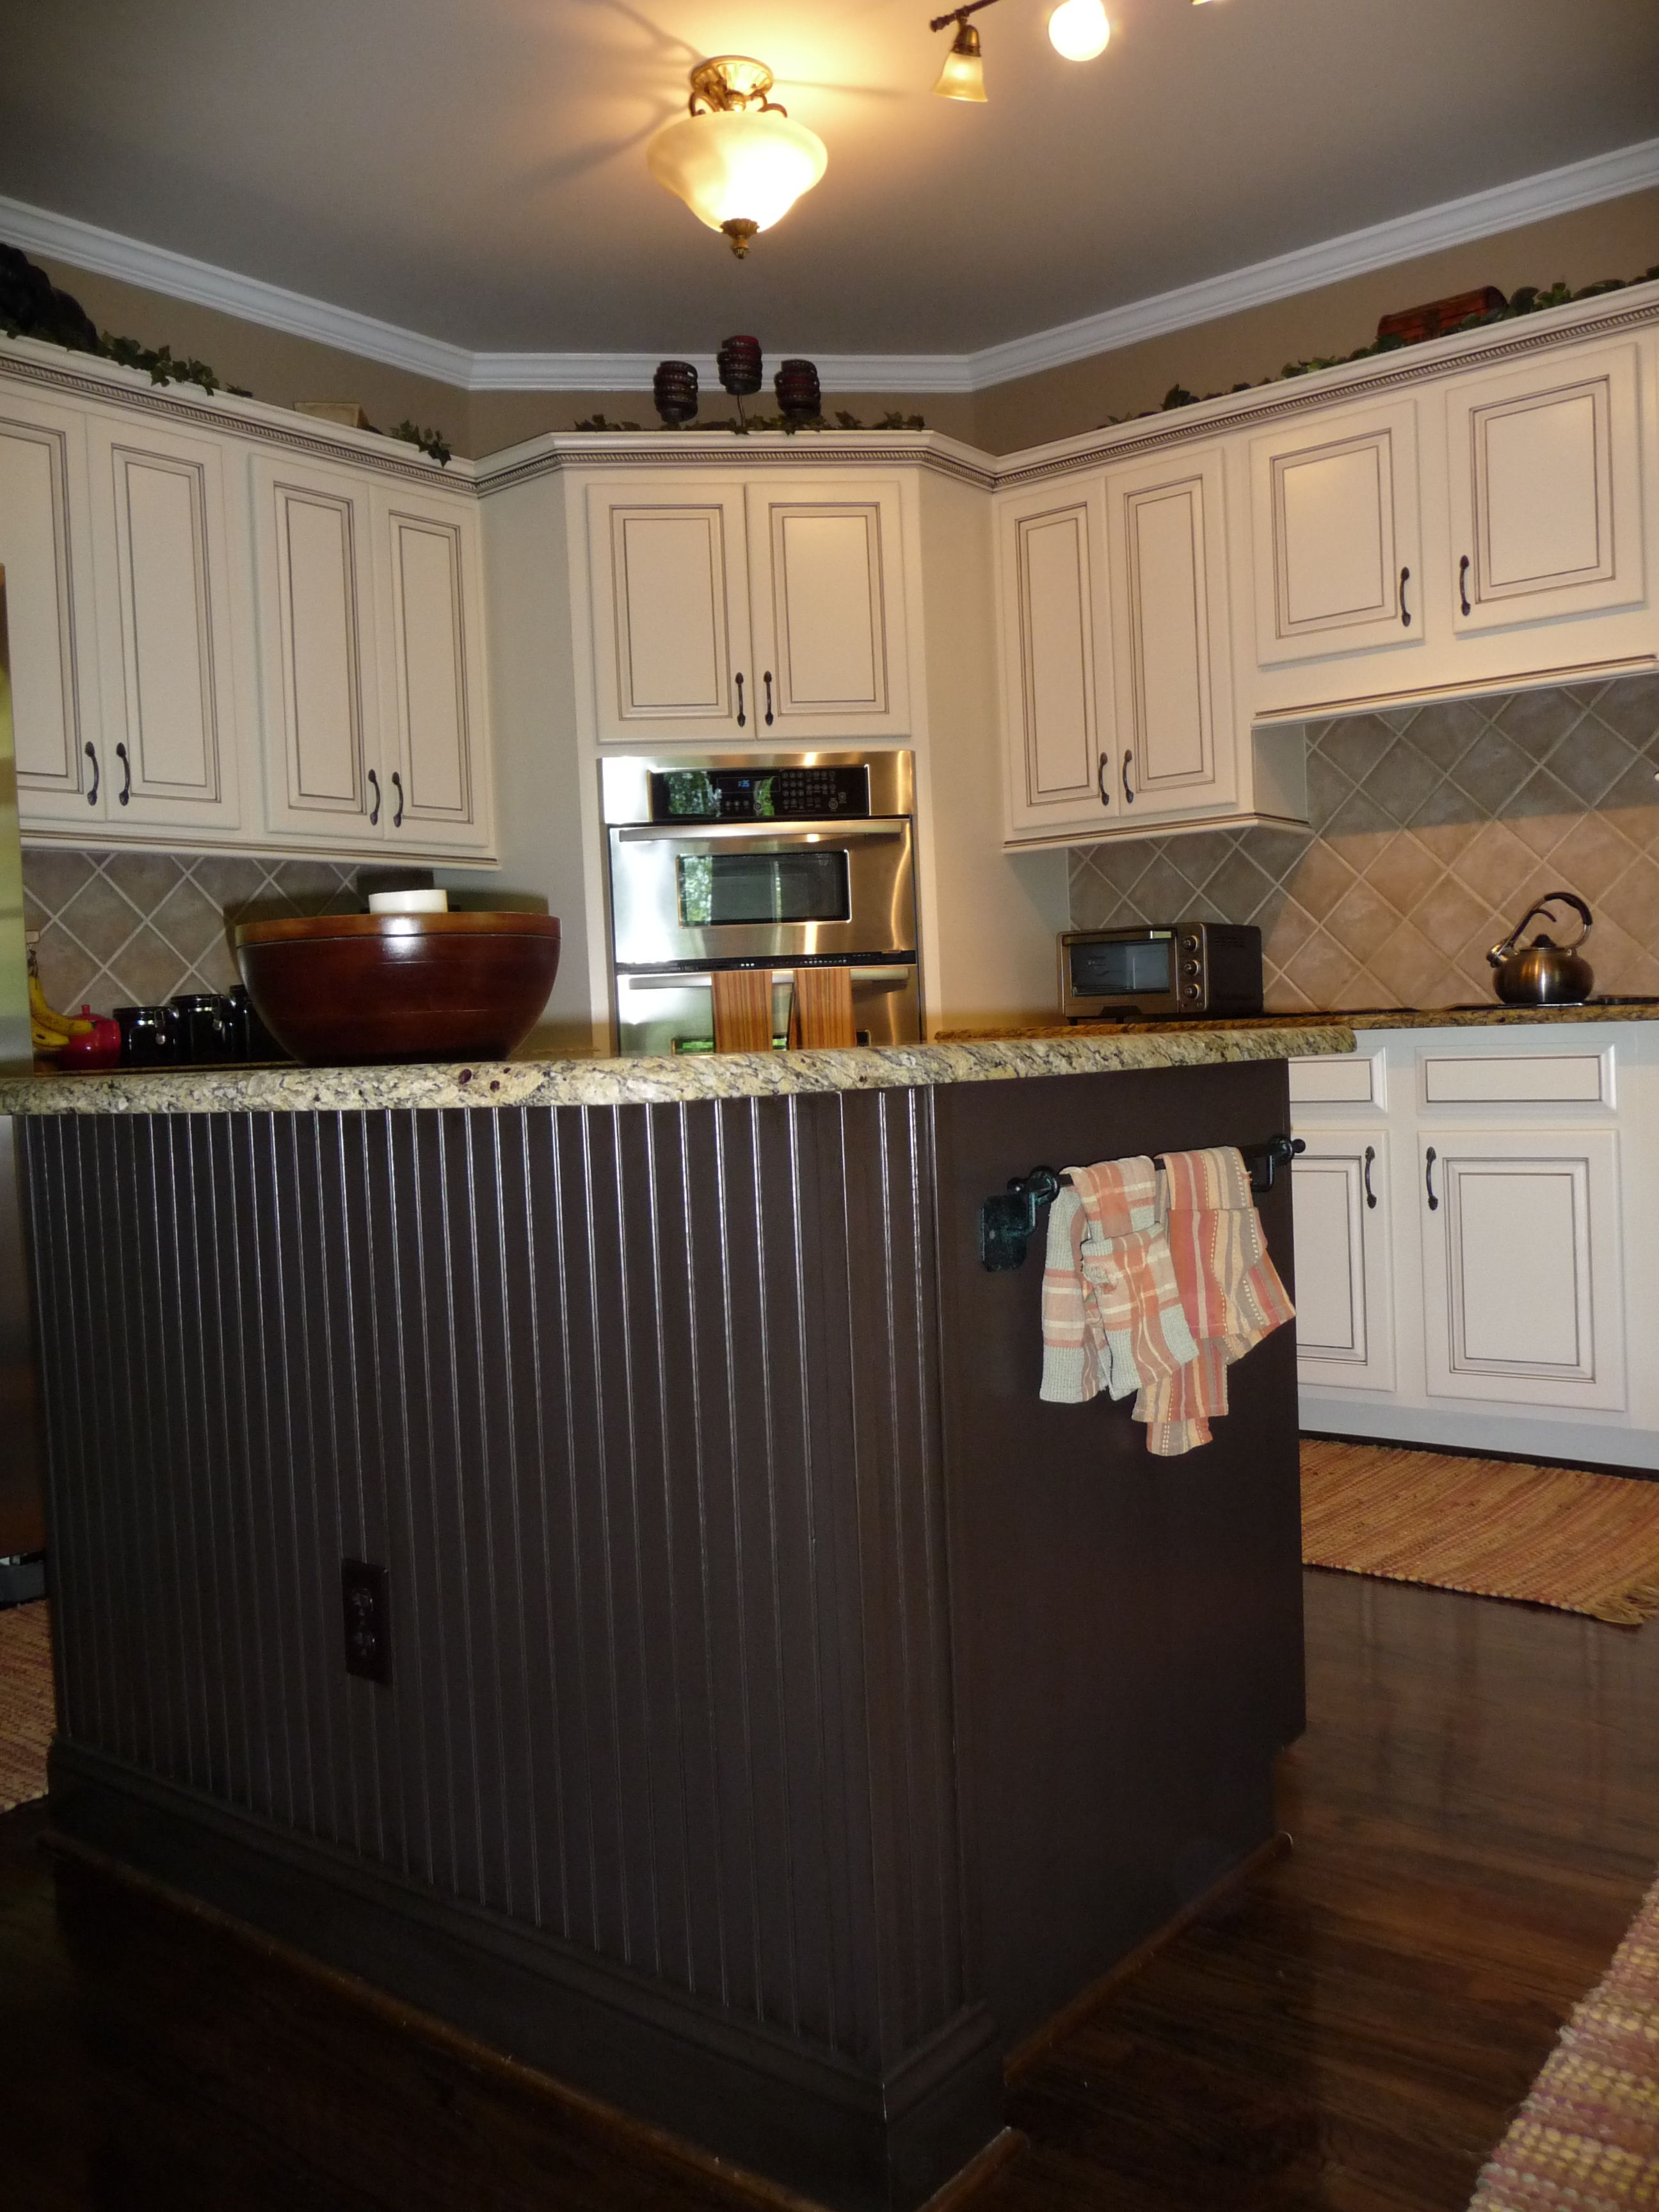 My Dream Kitchen At Last Painted Maple Cabinets Antique White Almond Added Light Rail At The Bottom And Kitchen Redo Kitchen Remodel Painted Kitchen Island